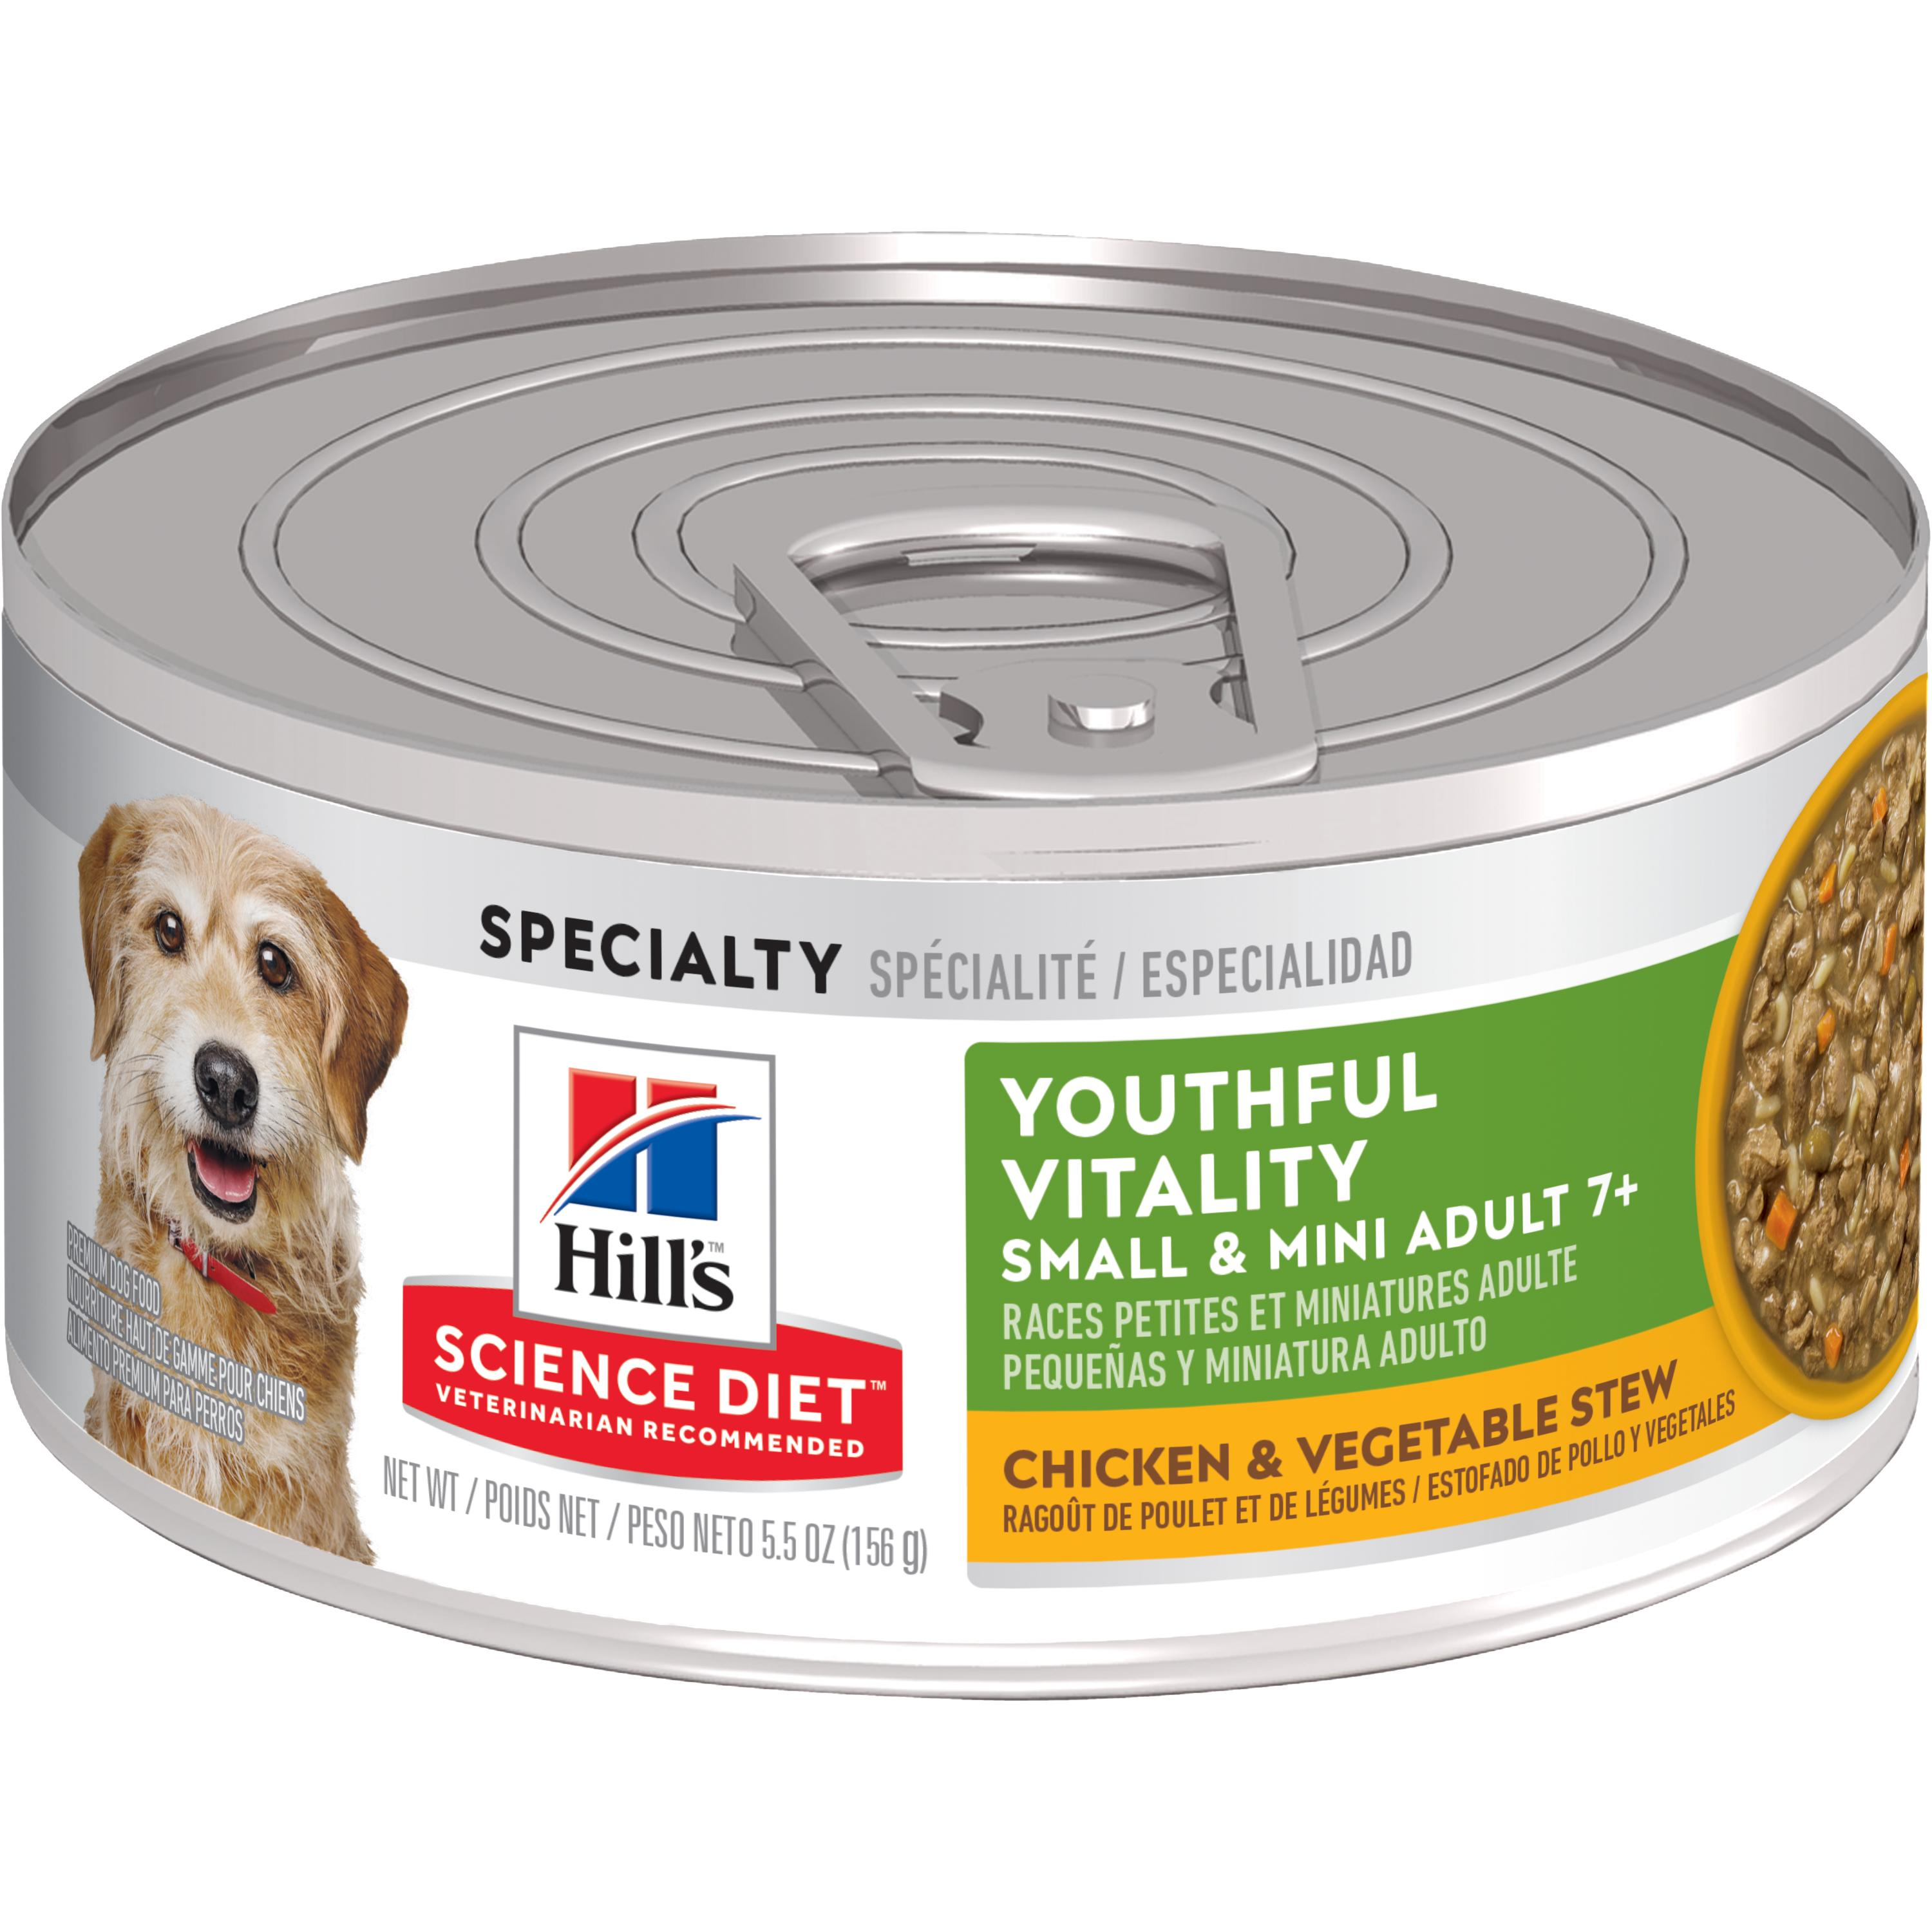 Hill's Science Diet(Spend $20, Get $5) Adult 7+ Youthful Vitality Small&Mini Chicken&Vegetable Stew Wet Dog Food,5.5 oz,24-pk(See description for rebate details)